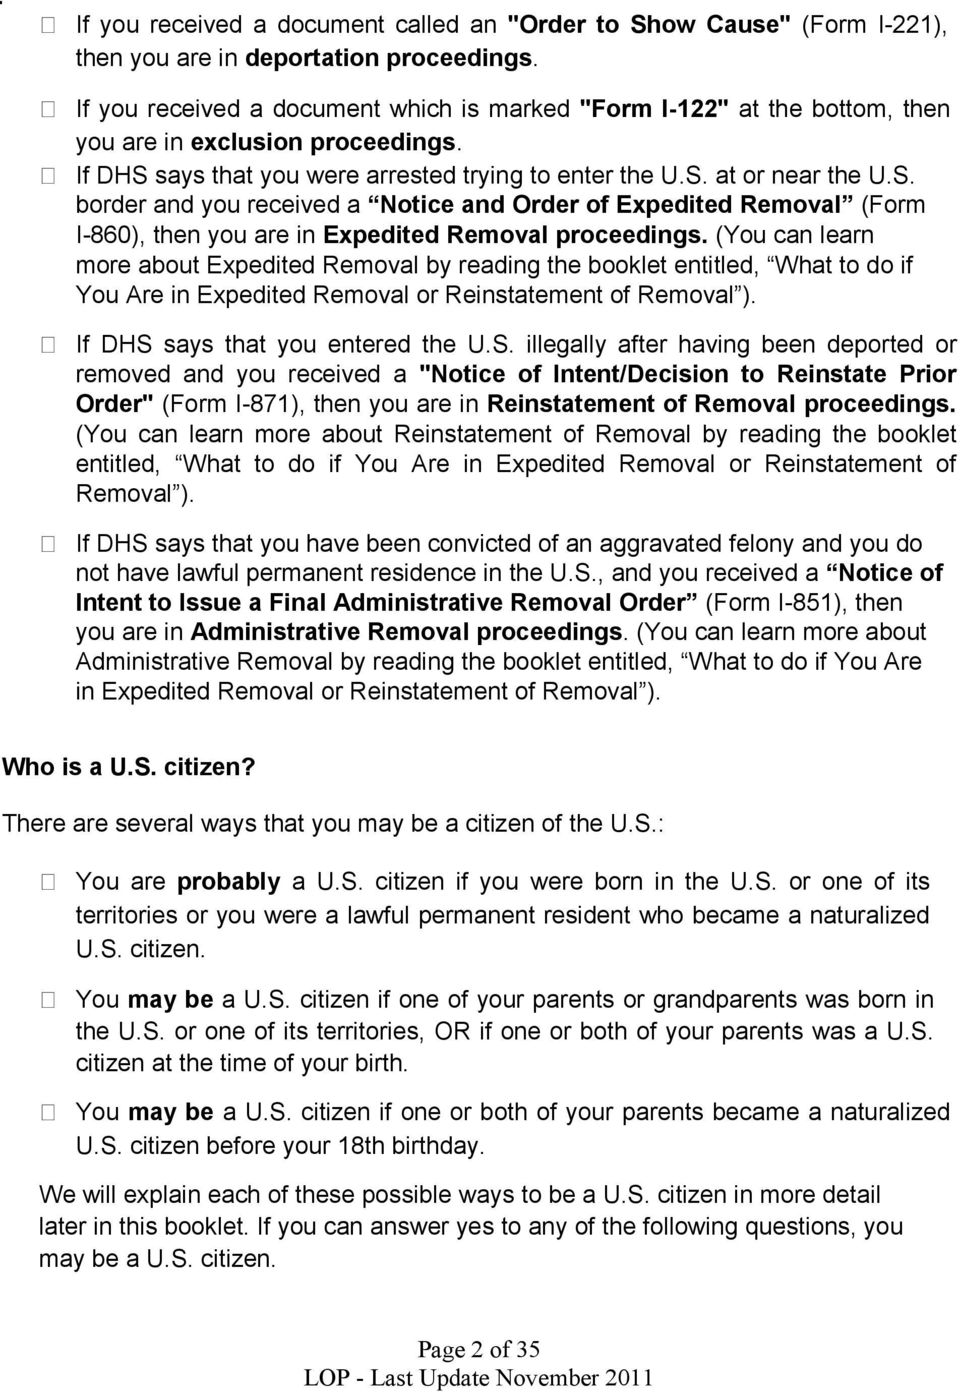 says that you were arrested trying to enter the U.S. at or near the U.S. border and you received a Notice and Order of Expedited Removal (Form I-860), then you are in Expedited Removal proceedings.